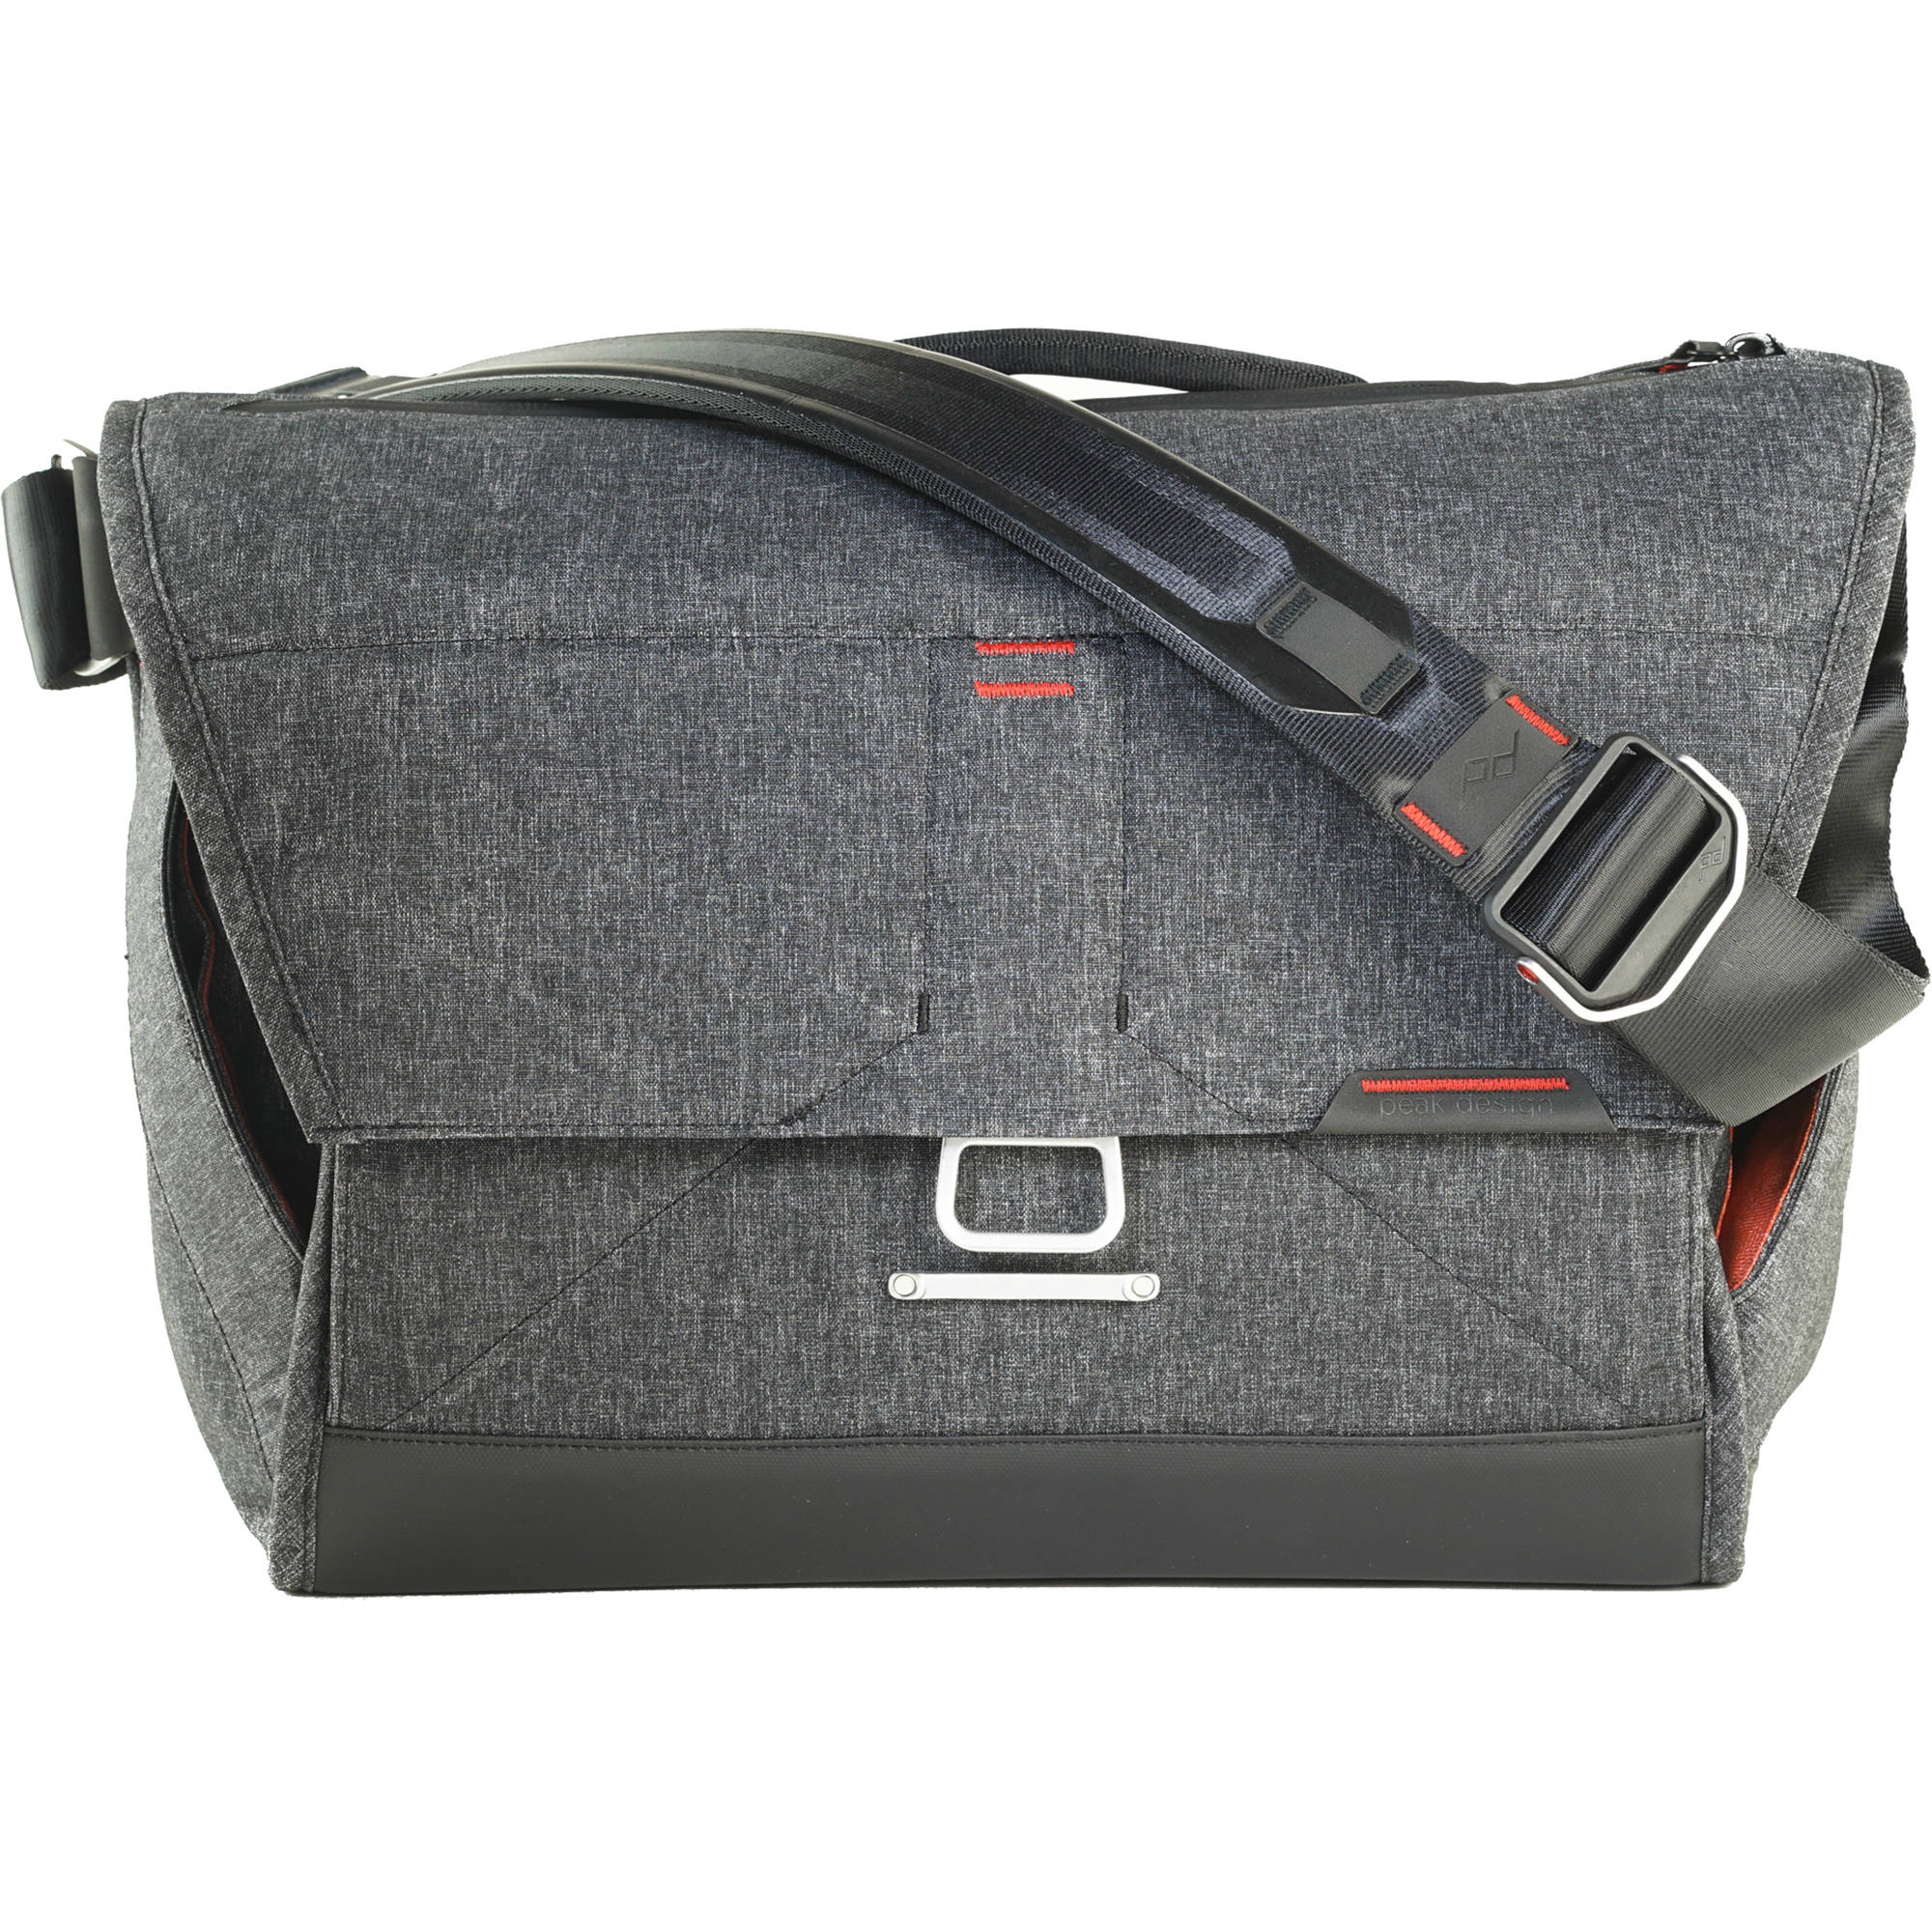 Camera Bag - Another massively cool item from Peak Design! Not only does this amazing bag hold my camera (with long lens attached), it also holds my 15